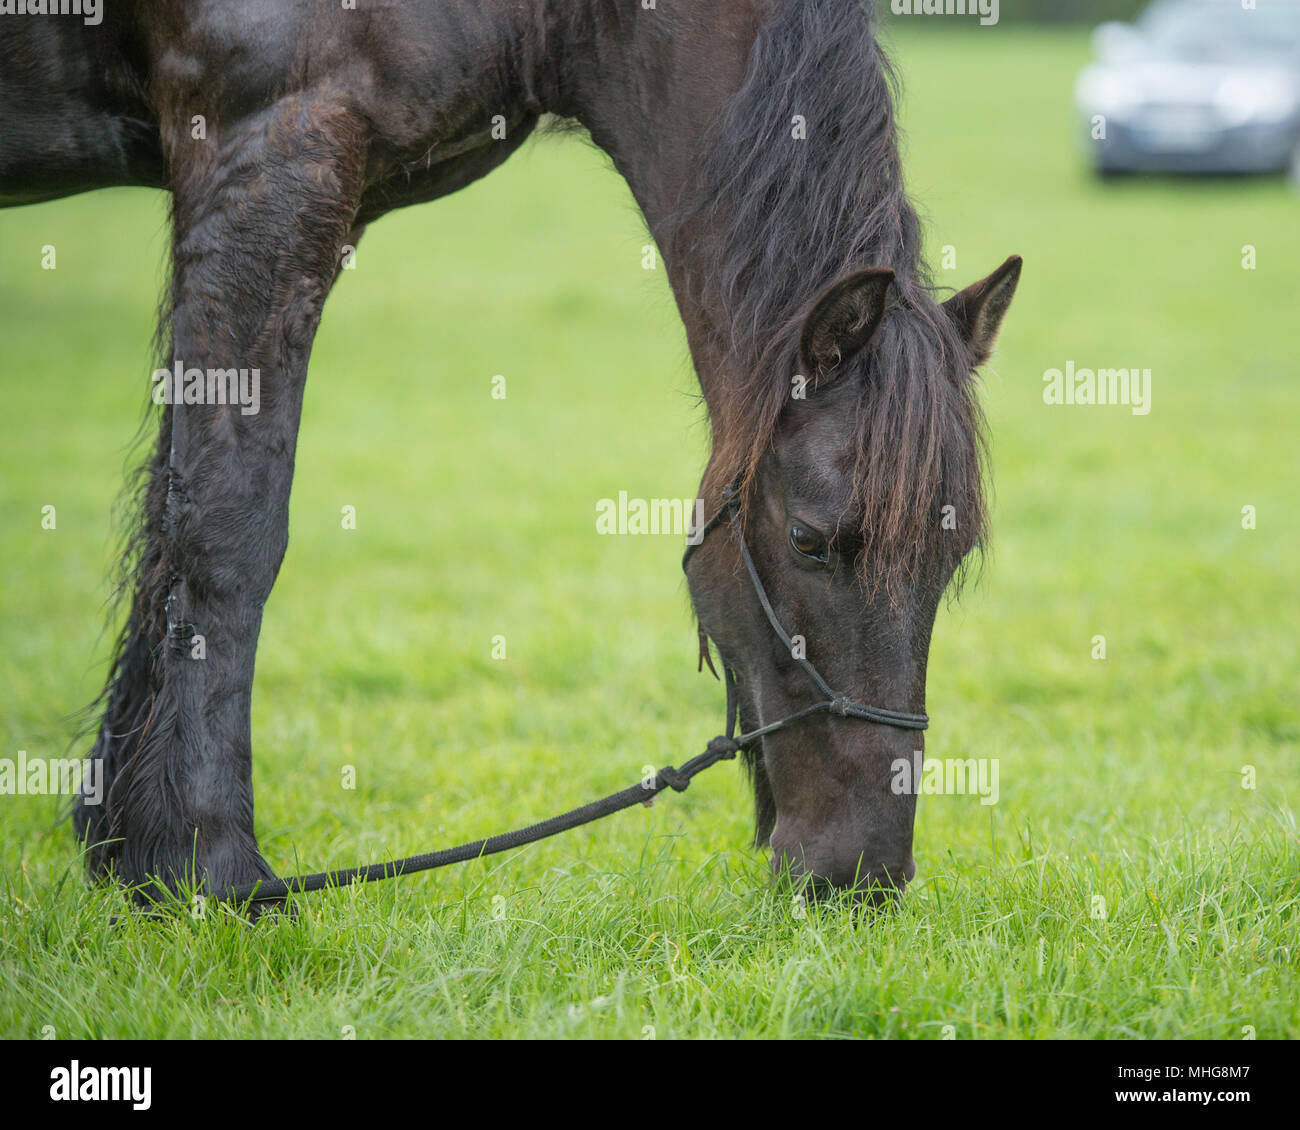 tethered horse grazing - Stock Image